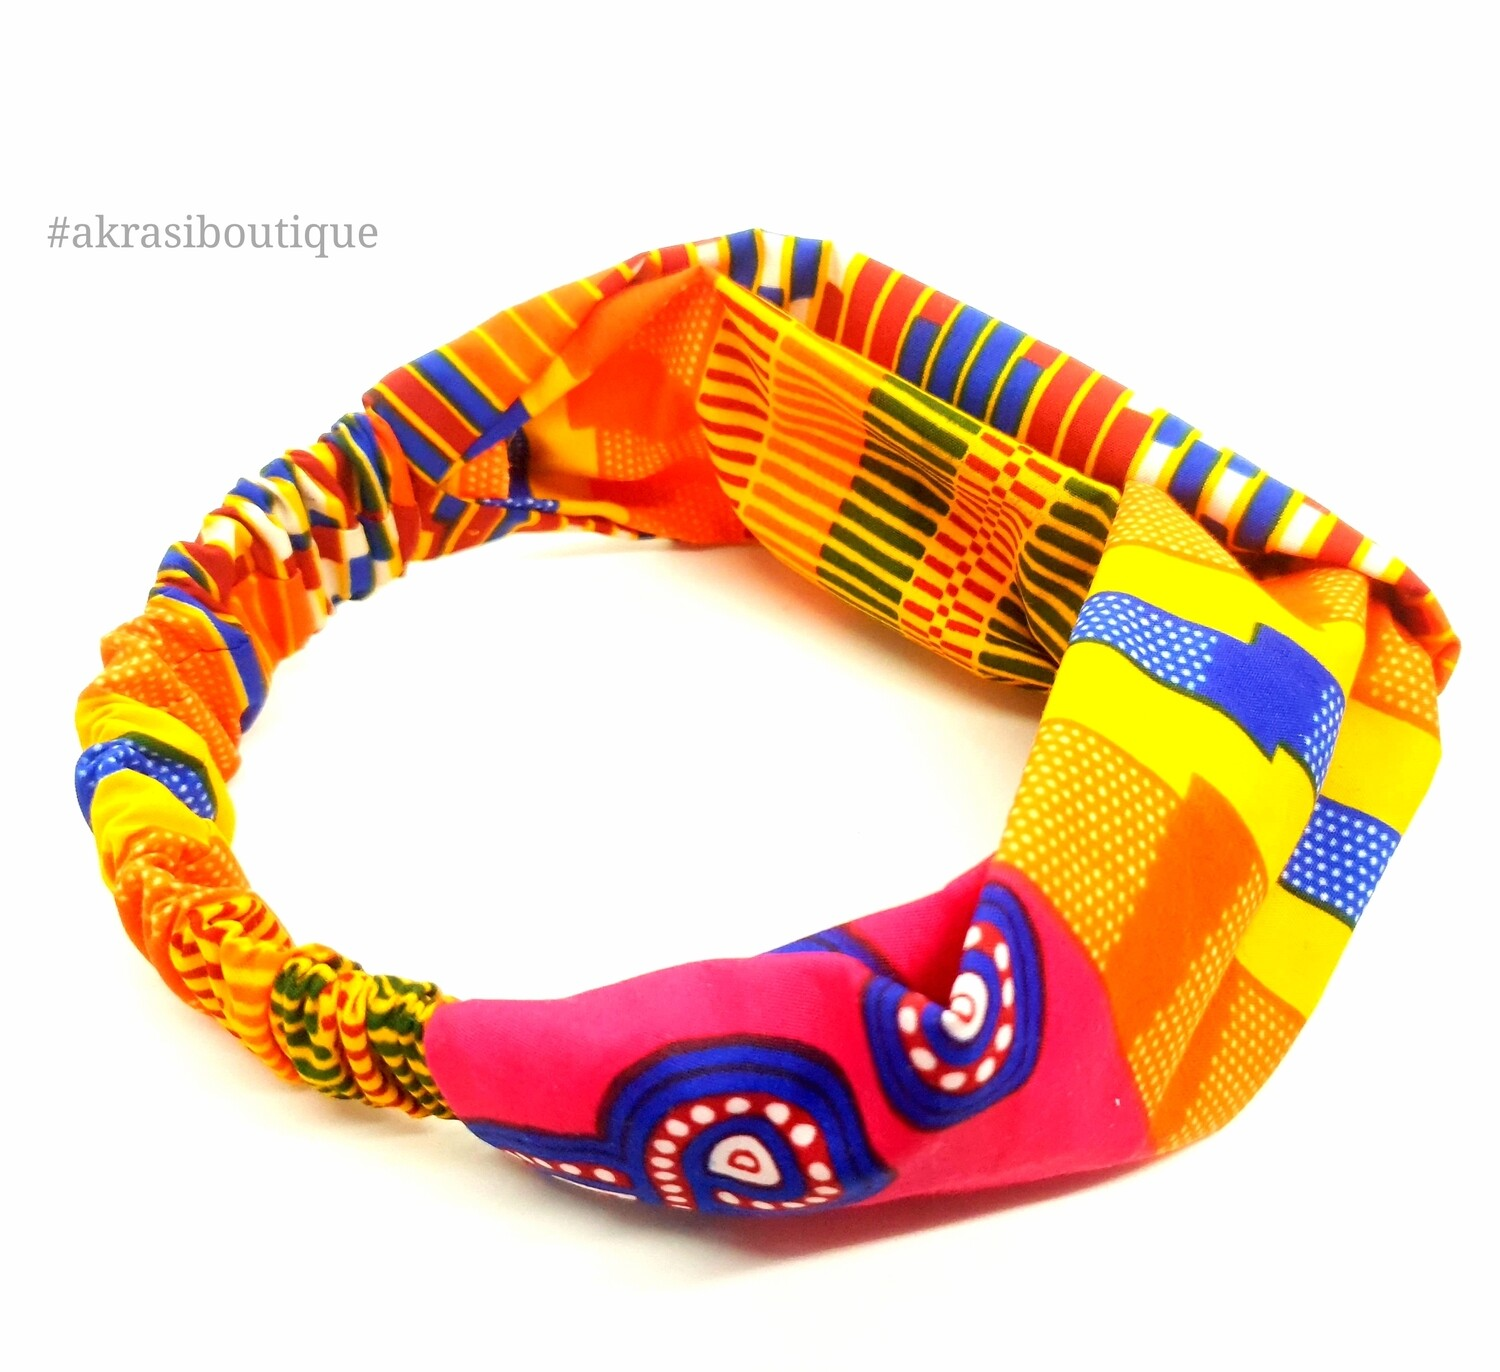 Supreme kente print half turban headband | African wax print headwrap | African twisted headband